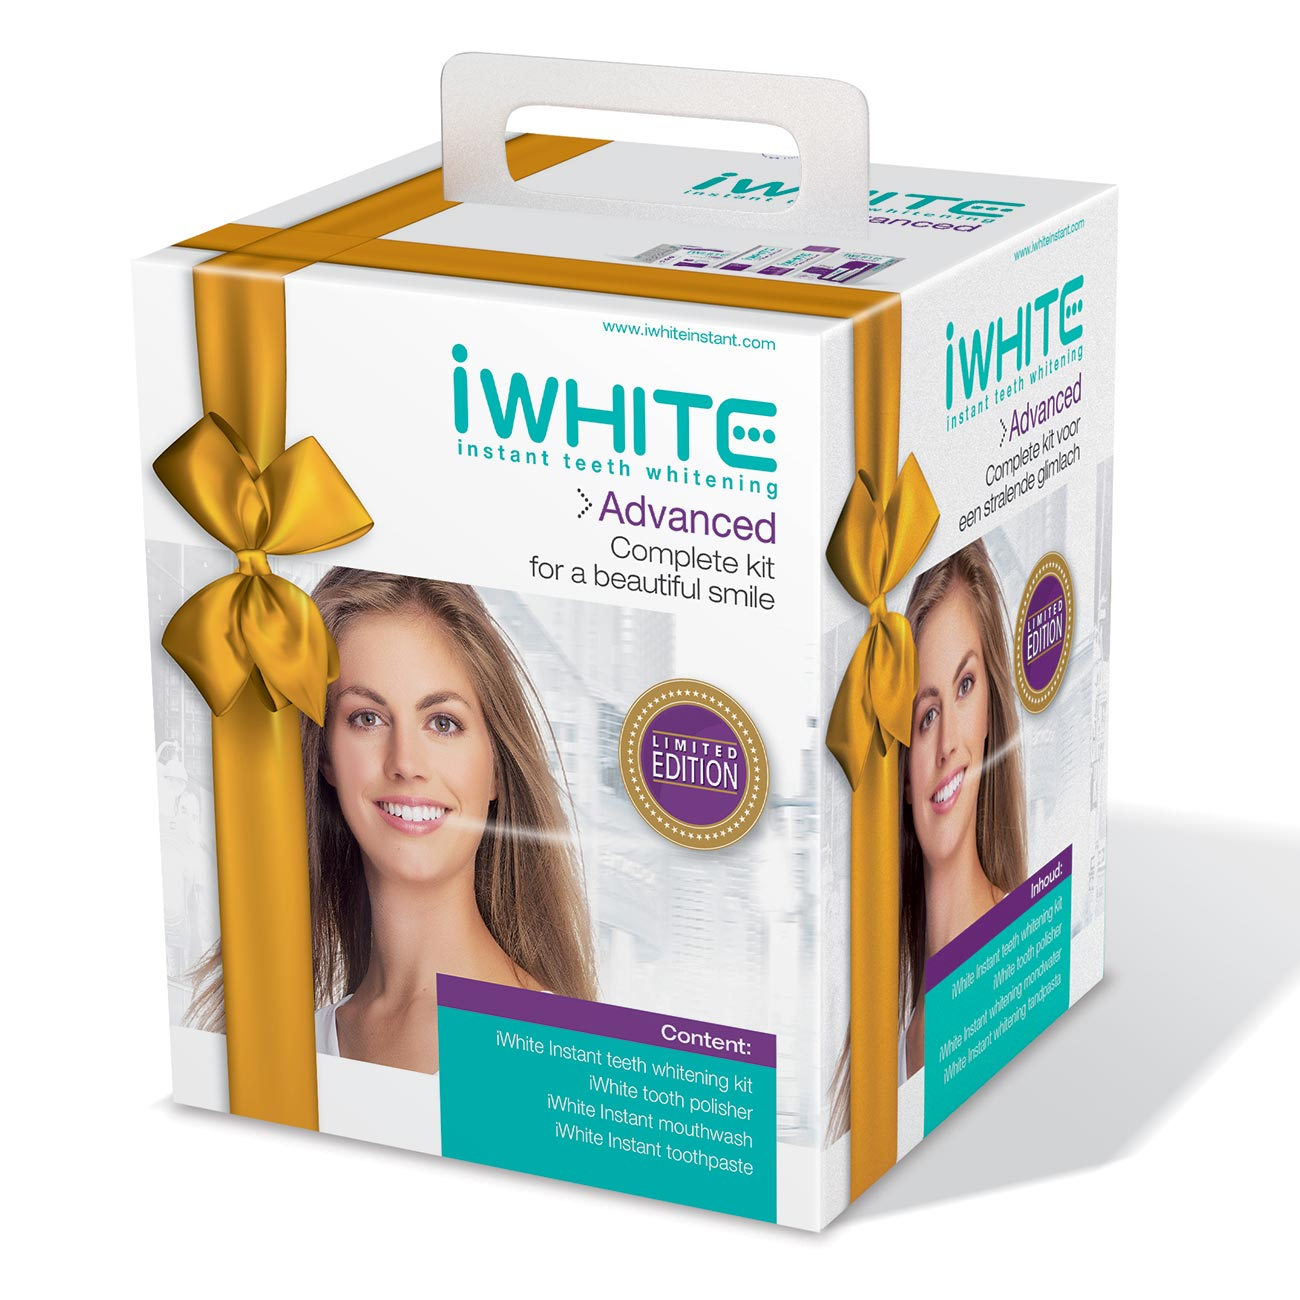 iWhite Instant Teeth Whitening - Advanced Complete Kit